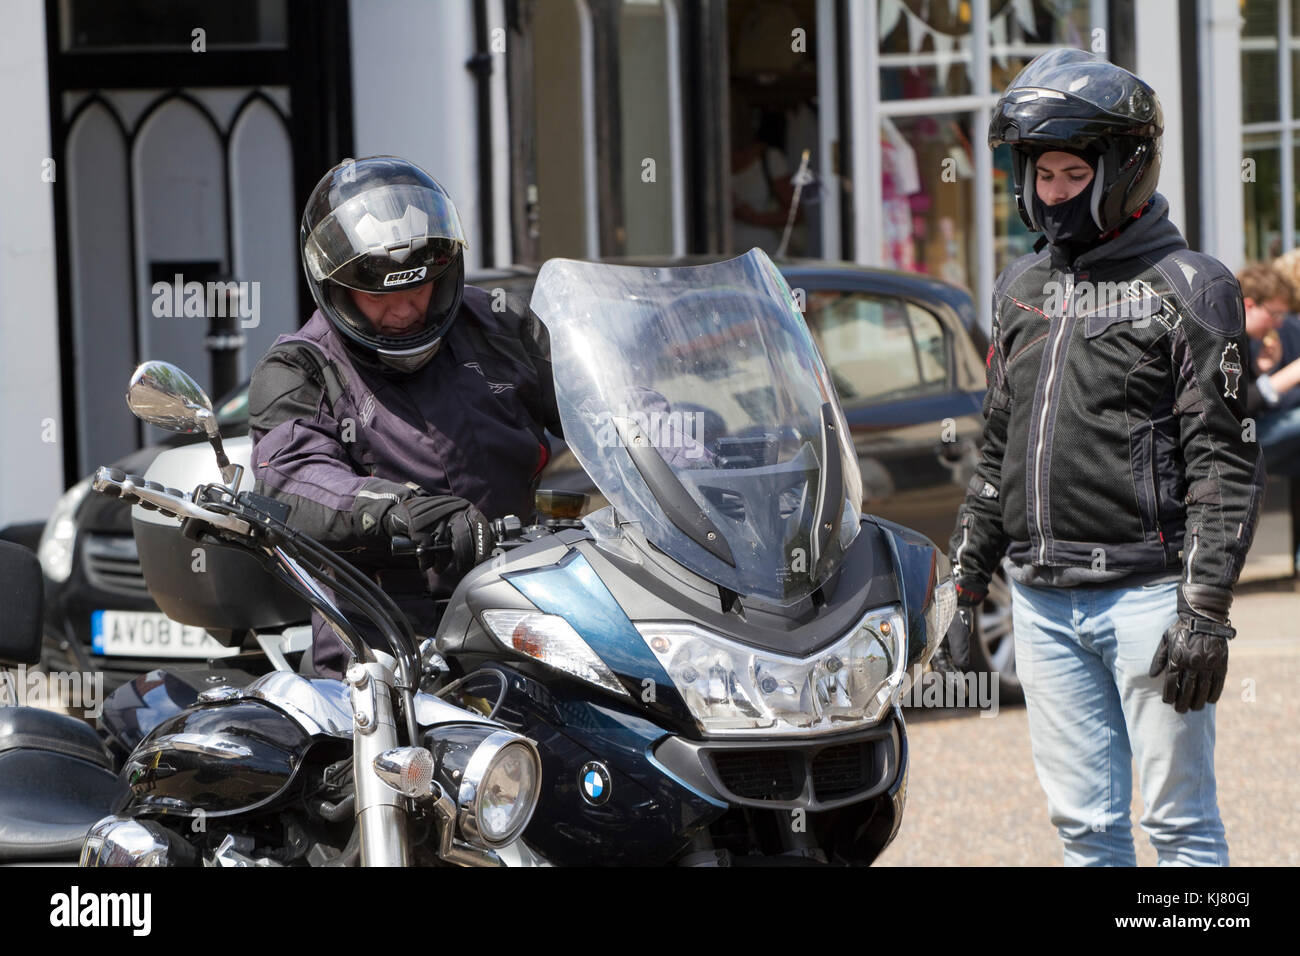 Couple parking a large motorbike on a sunny day - Stock Image